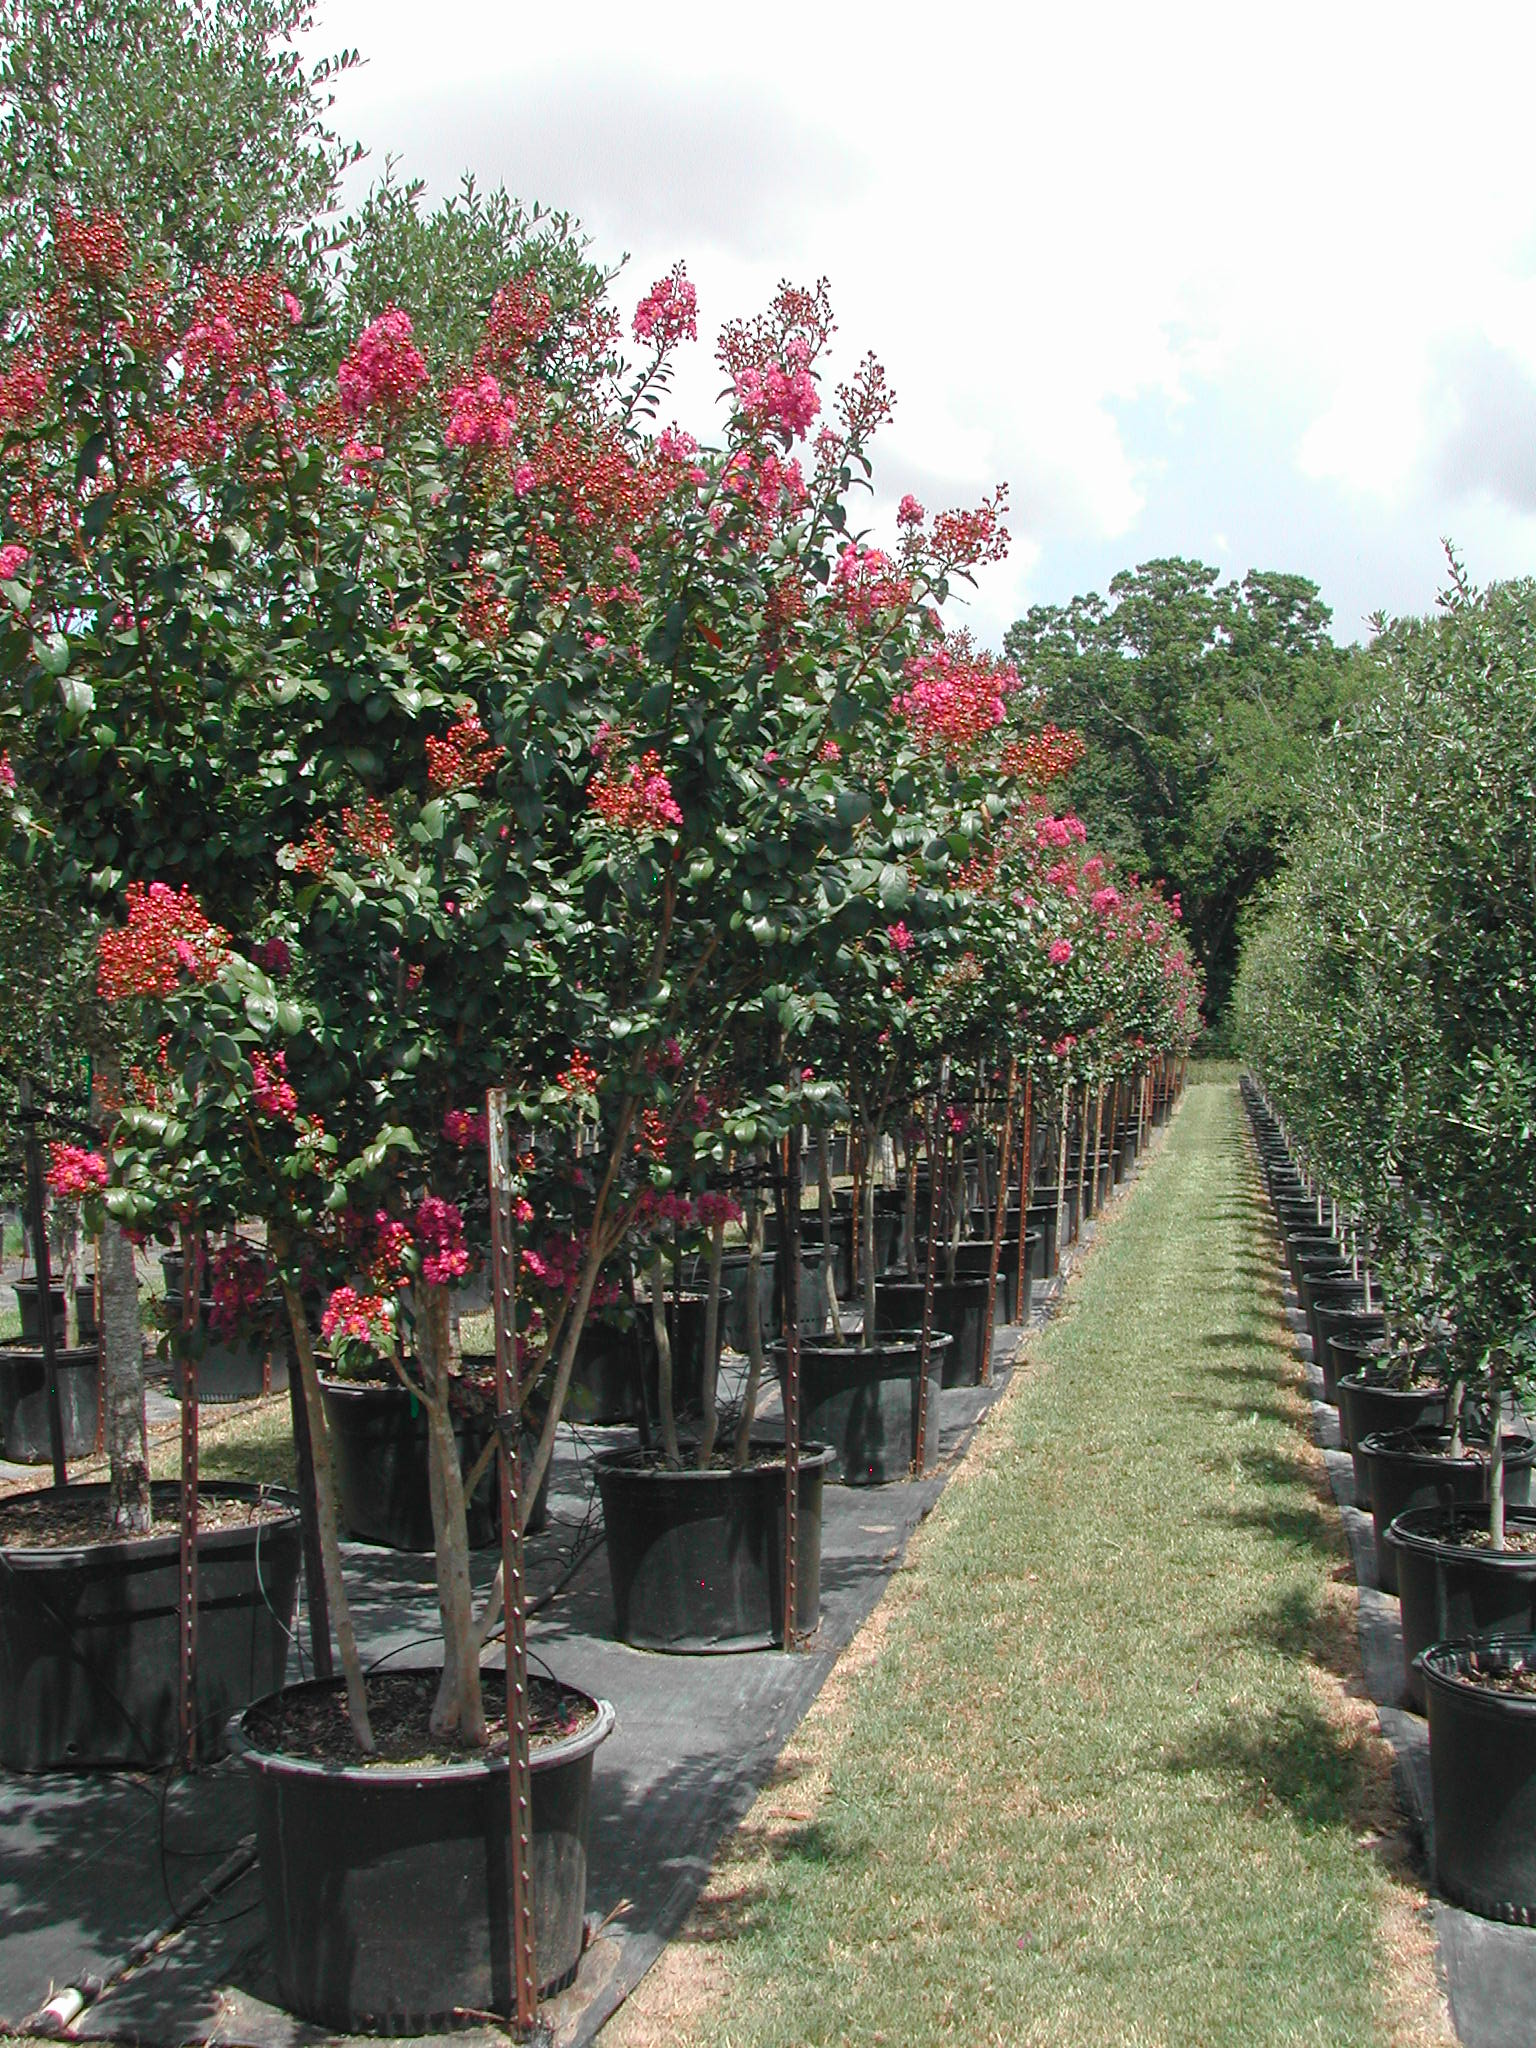 For Over Forty Years People In The Houston Area Have Trusted Bill Bownds Nursery To Satisfy Their Tree Needs